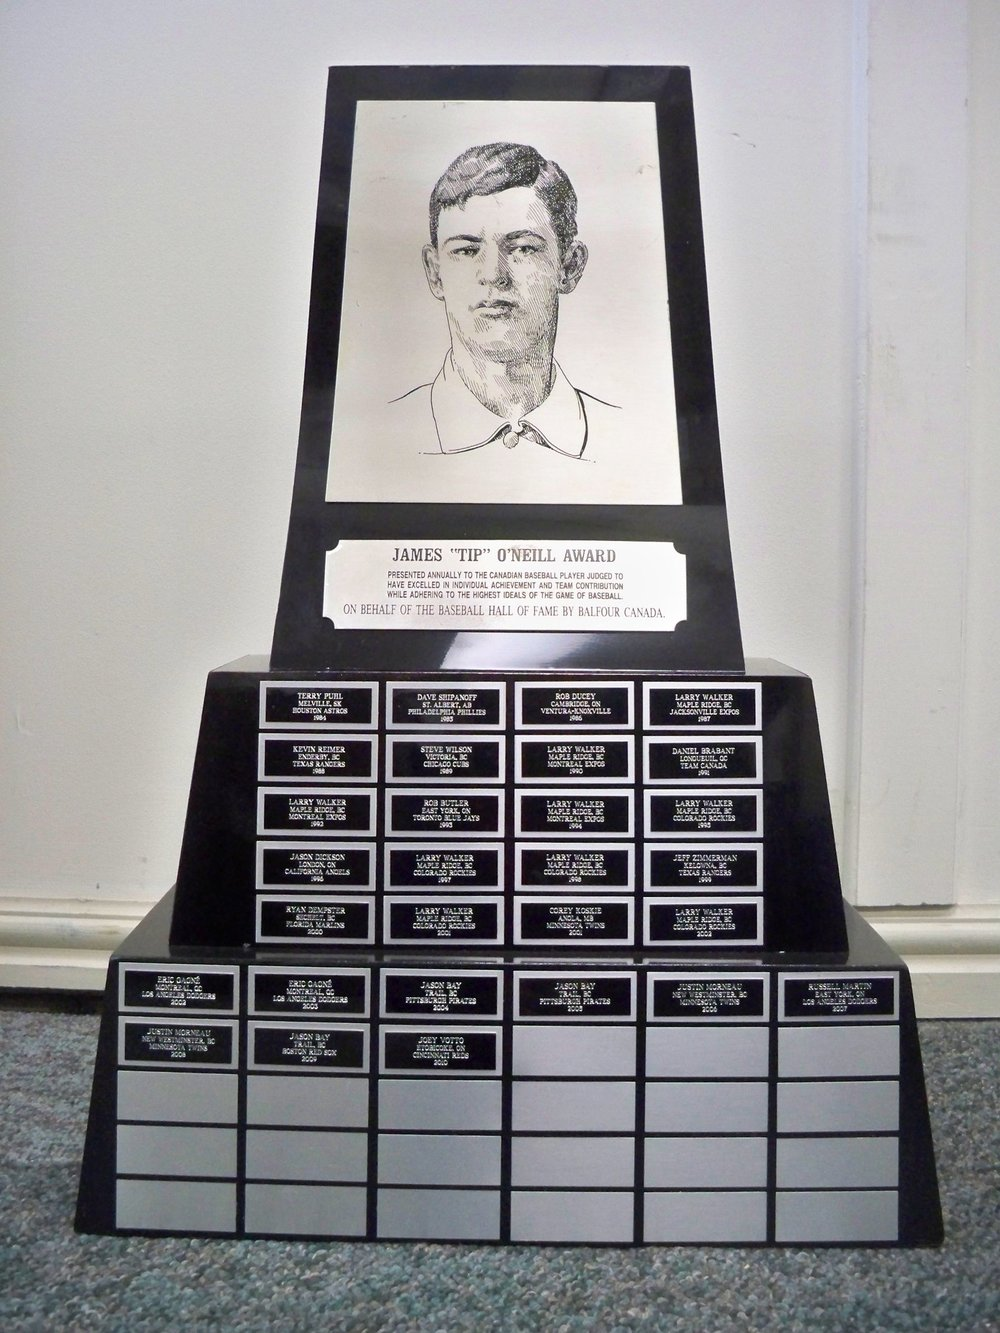 The Canadian Baseball Hall of Fame hands out the Tip O'Neill Award to the top Canadian player each year. Photo Credit: Canadian Baseball Hall of Fame